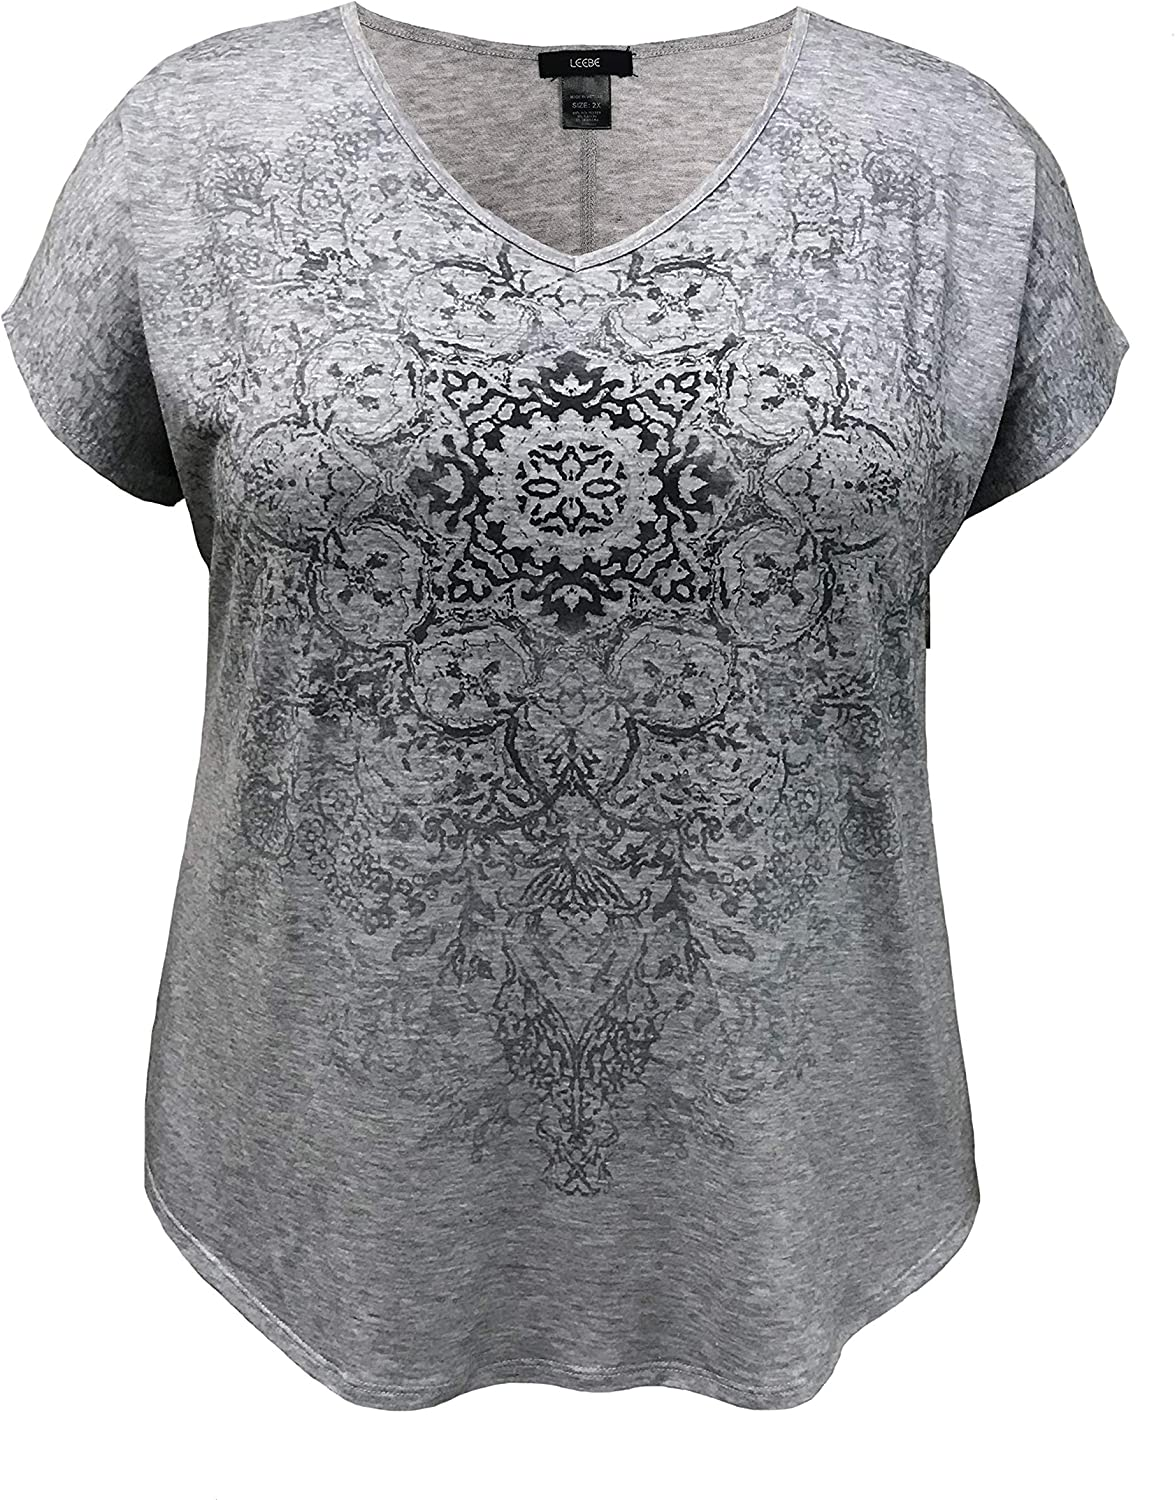 1X-5X LEEBE Womens Plus Size V-Neck Dolman Short Sleeve Print Top